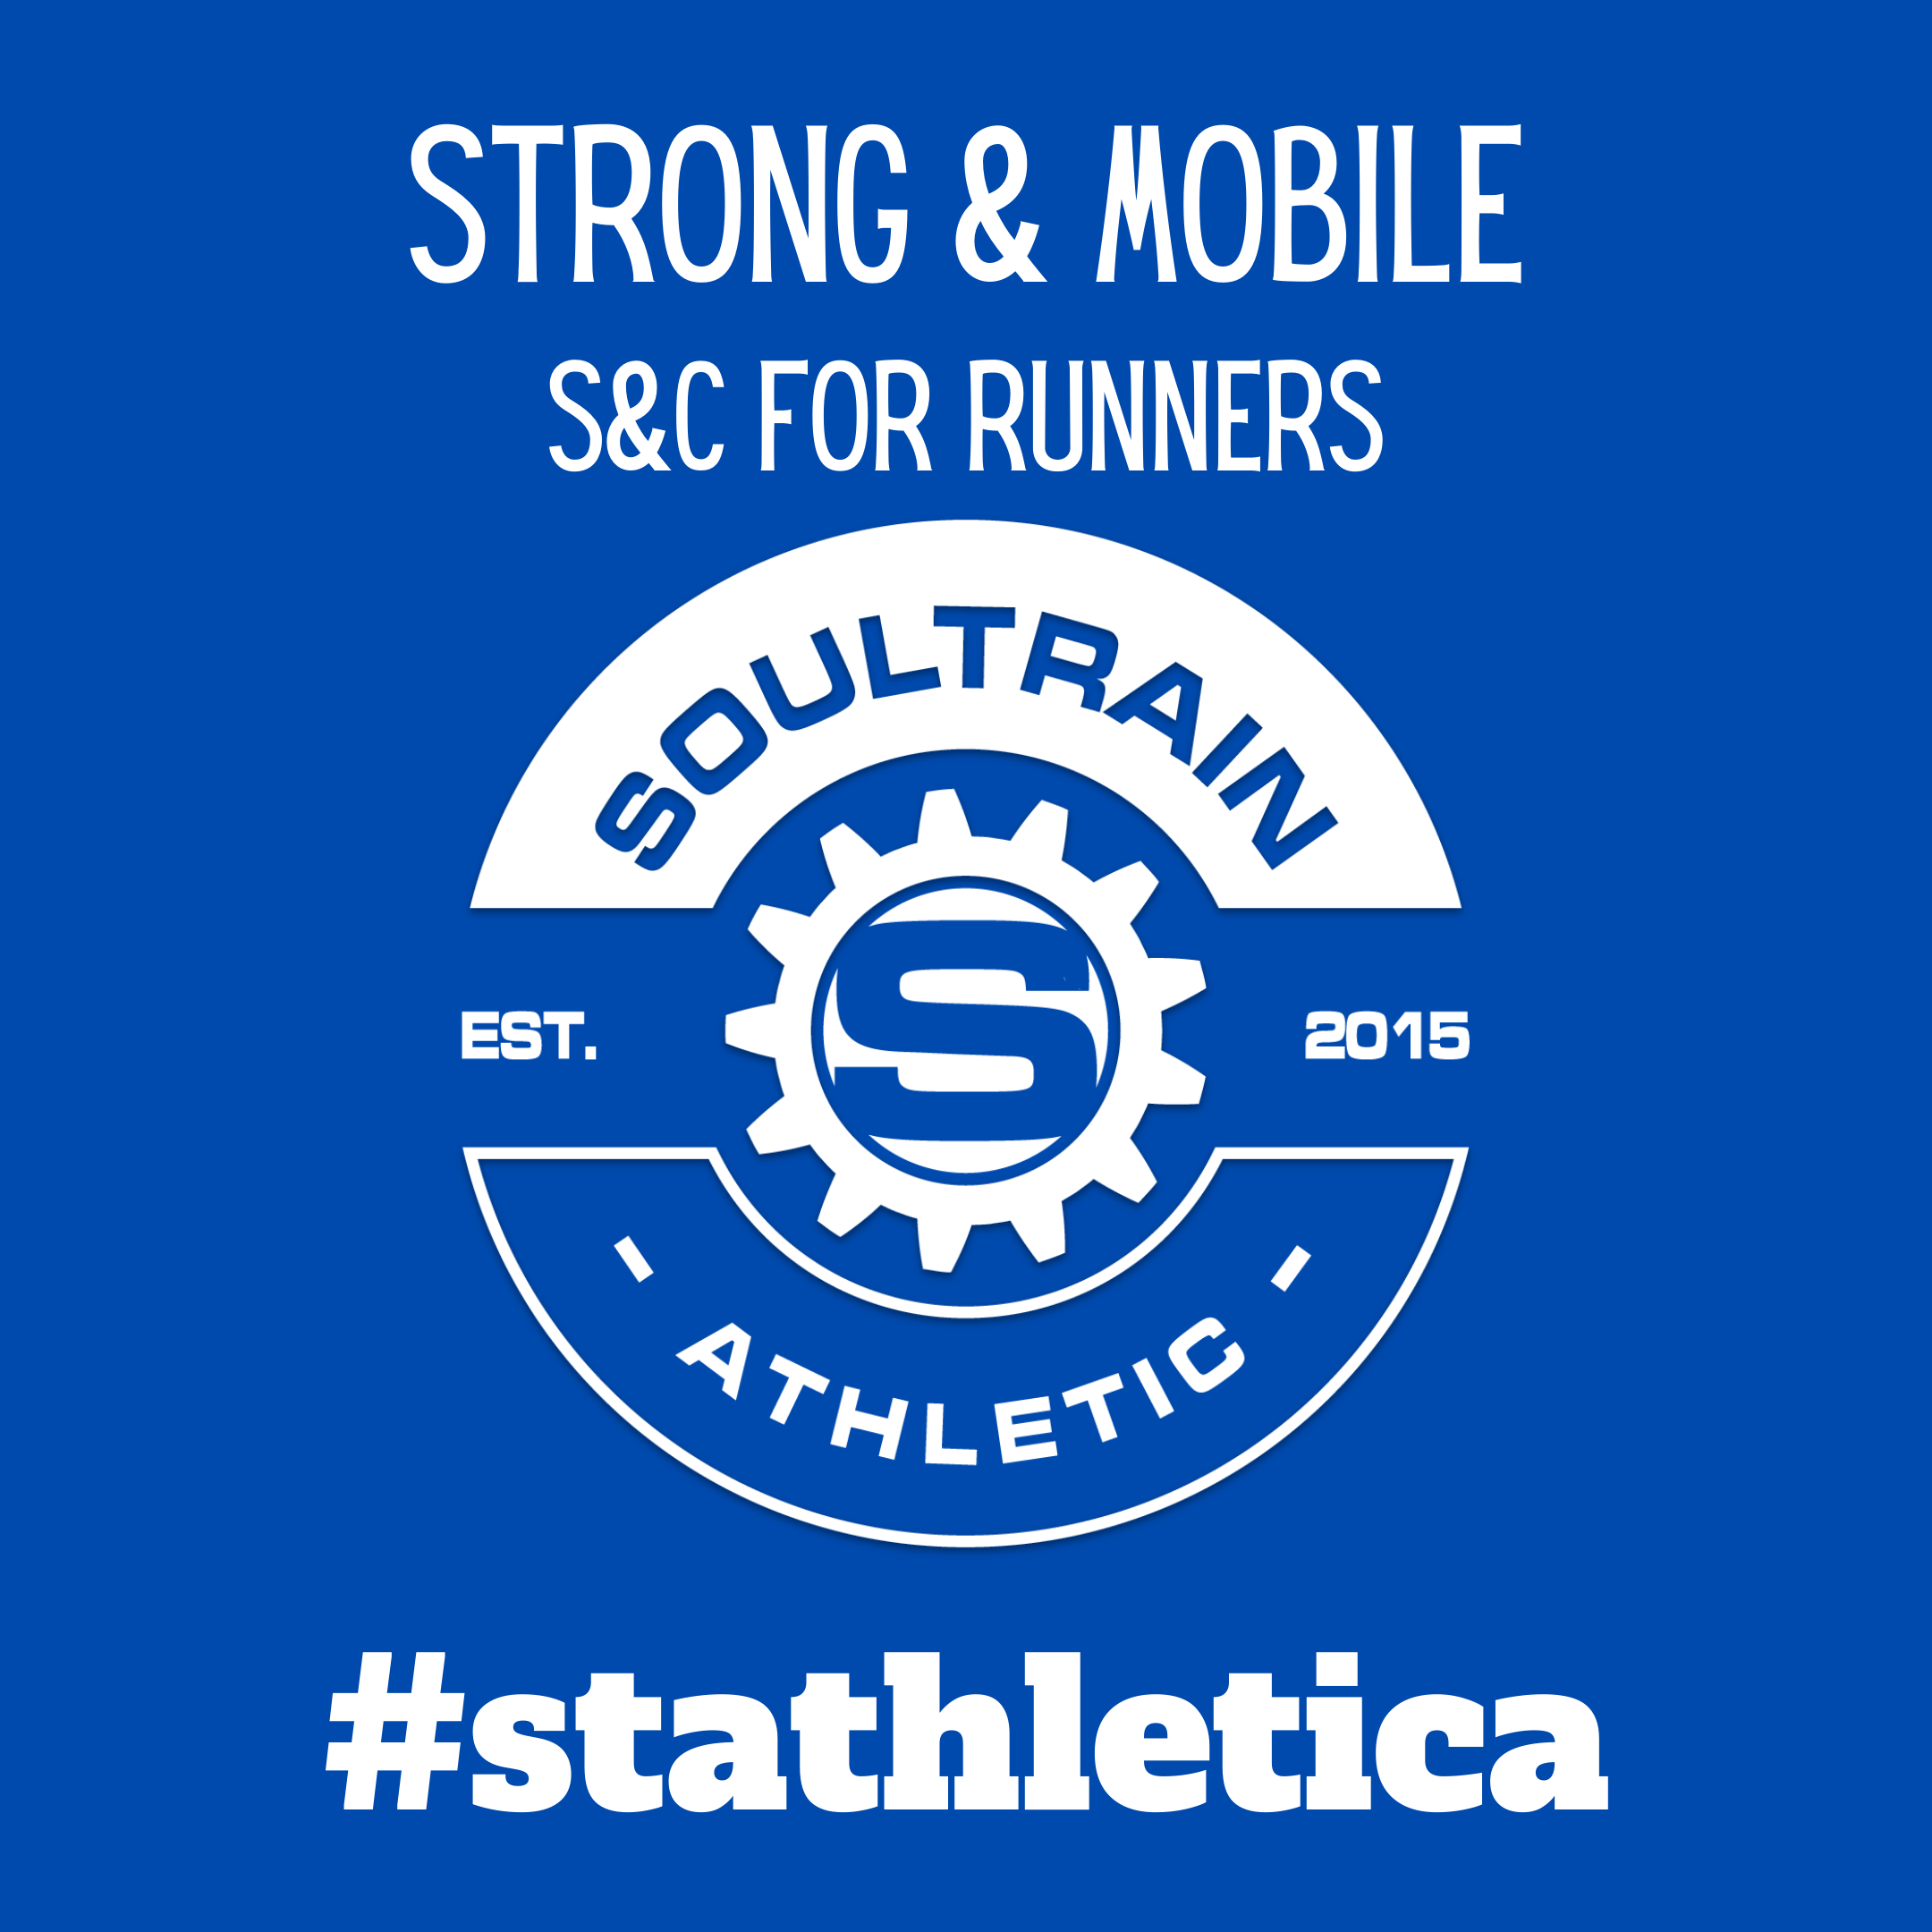 Strong & Mobile. S&C for Runners